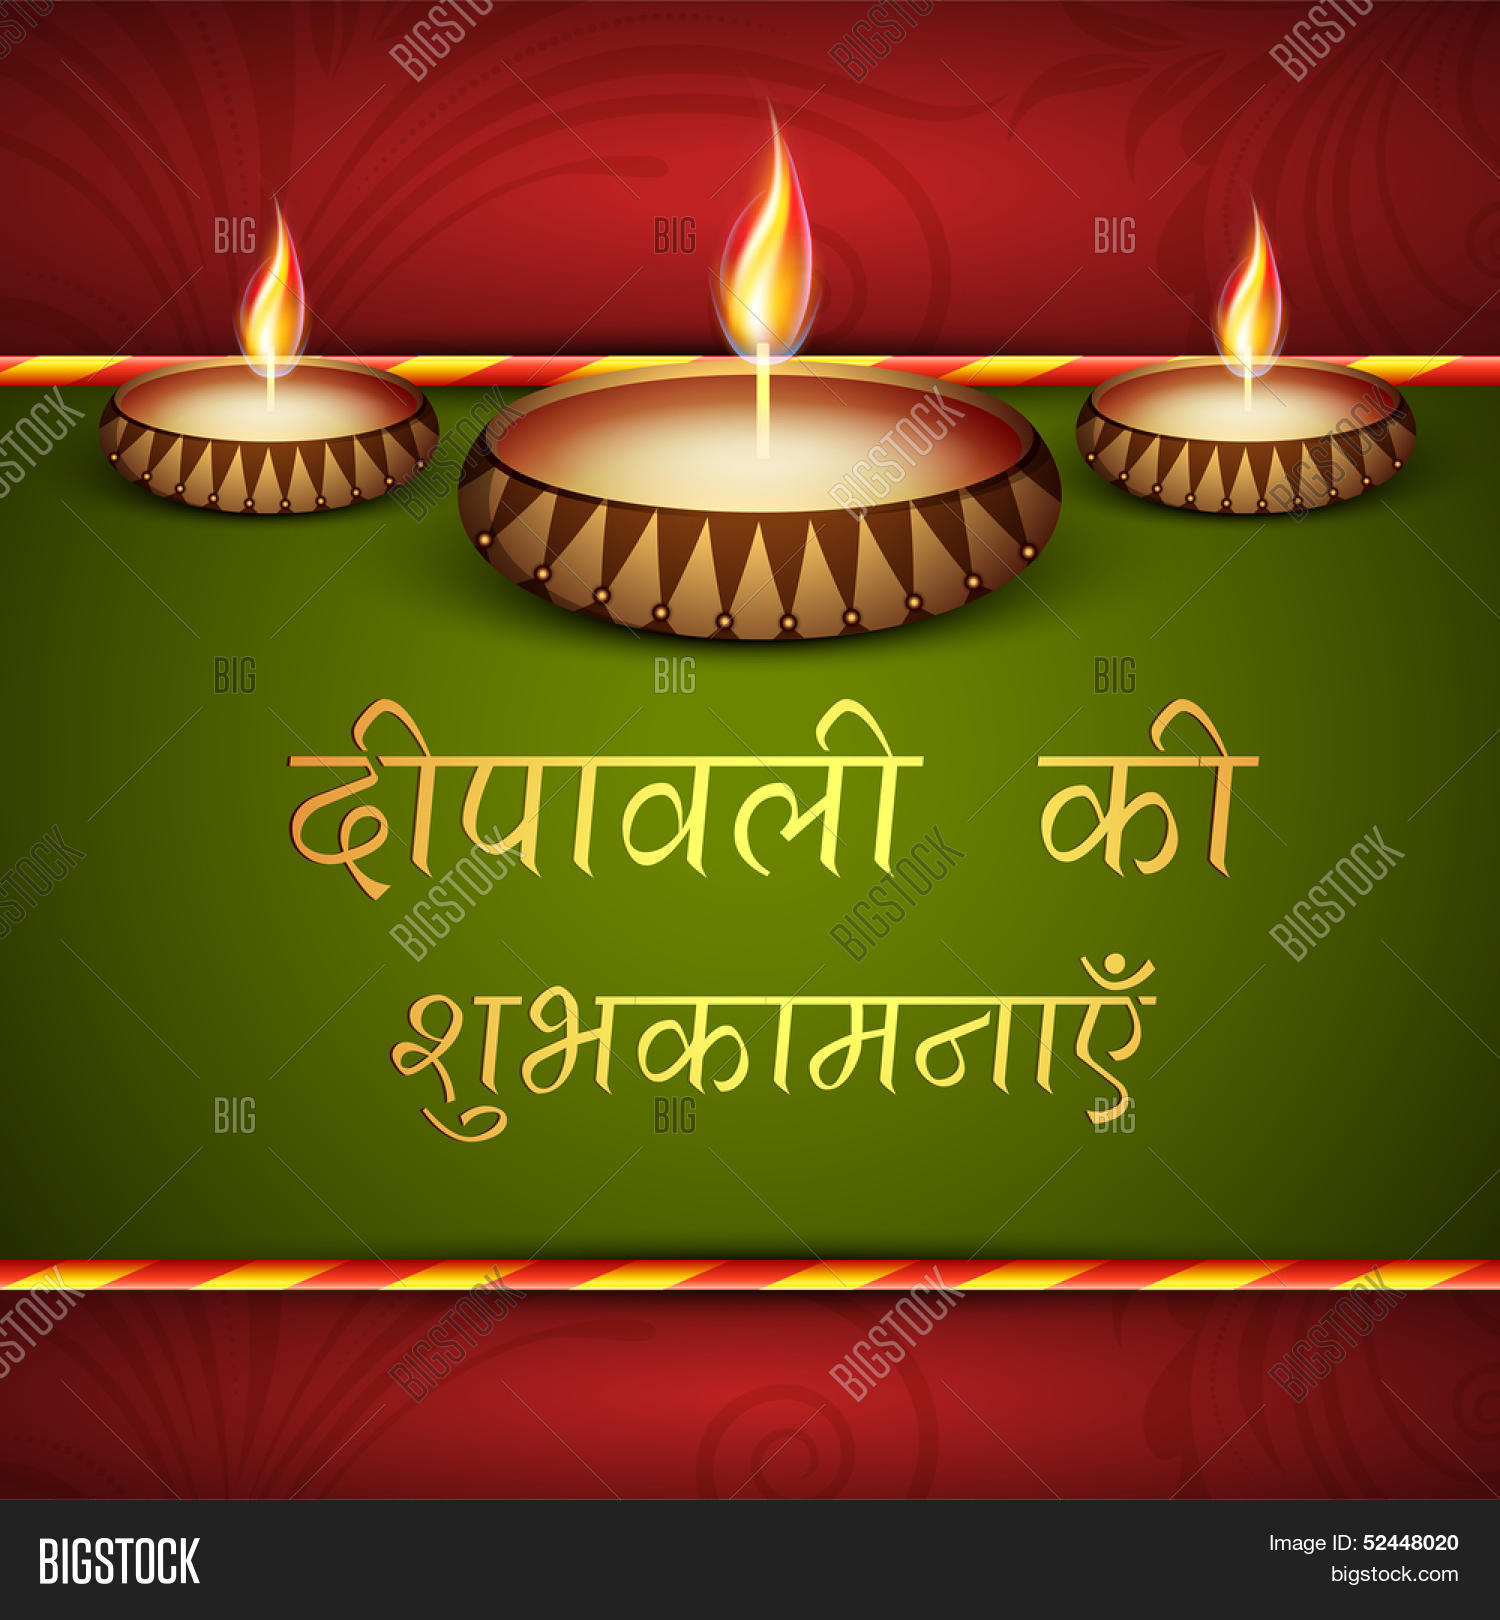 Indian festival vector photo free trial bigstock indian festival of lights happy diwali greeting card with illuminated beautiful oil lit lamps and m4hsunfo